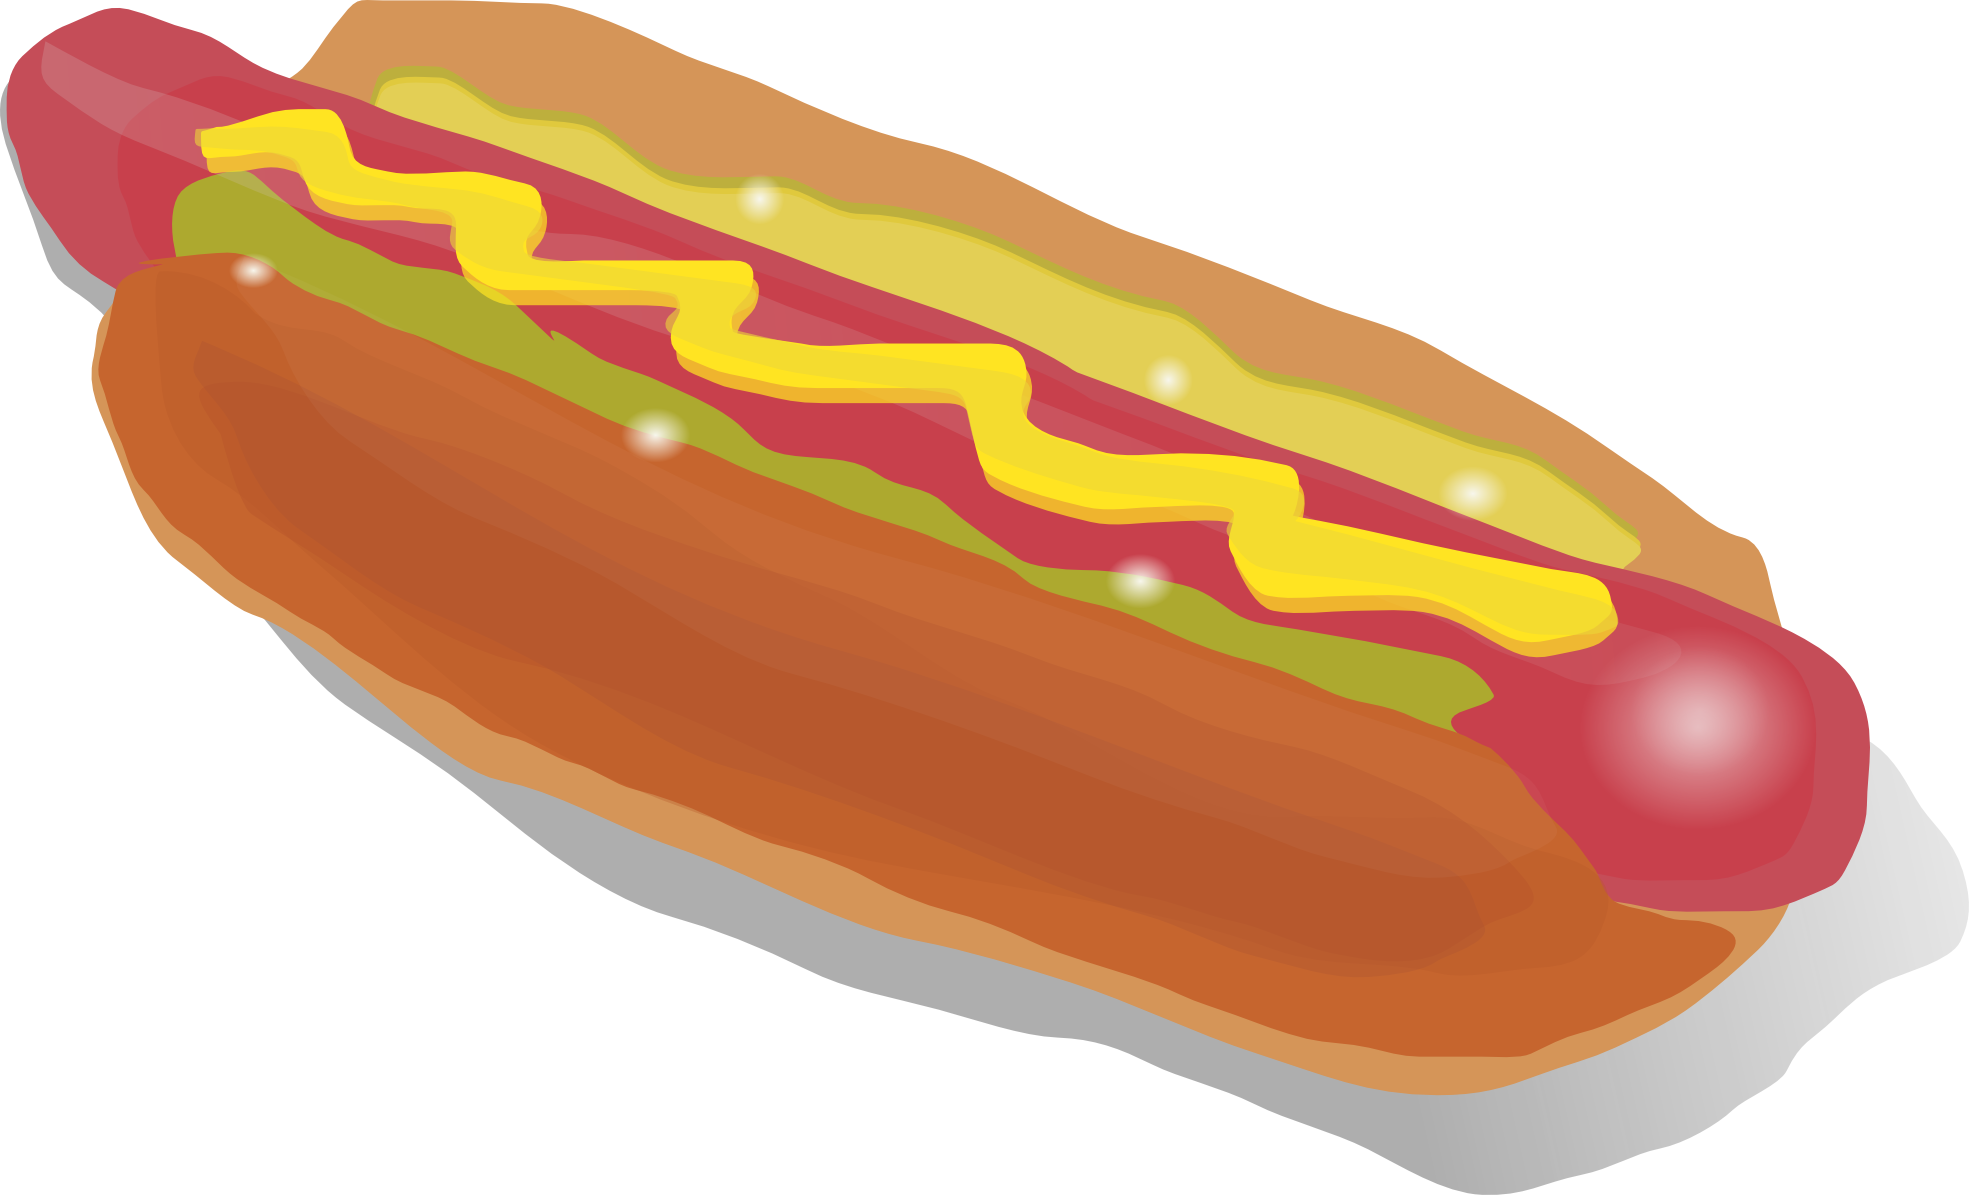 Cartoon Pictures Of Hot Dogs - ClipArt Best